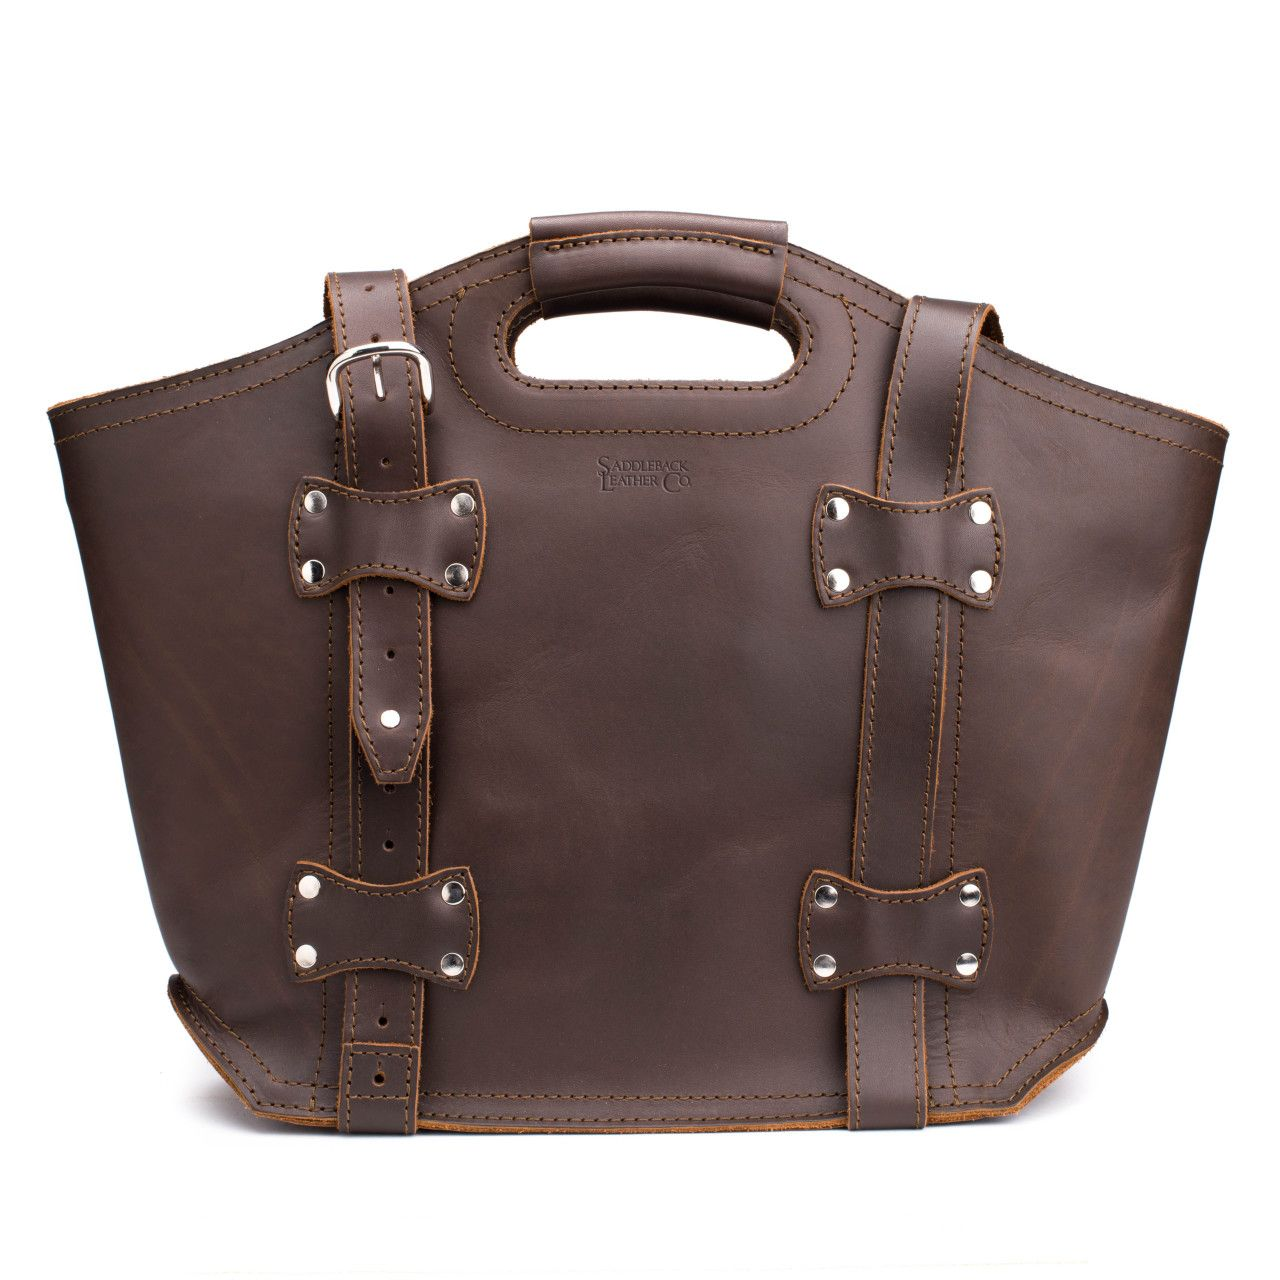 premium leather tote bag large in dark coffee brown leather